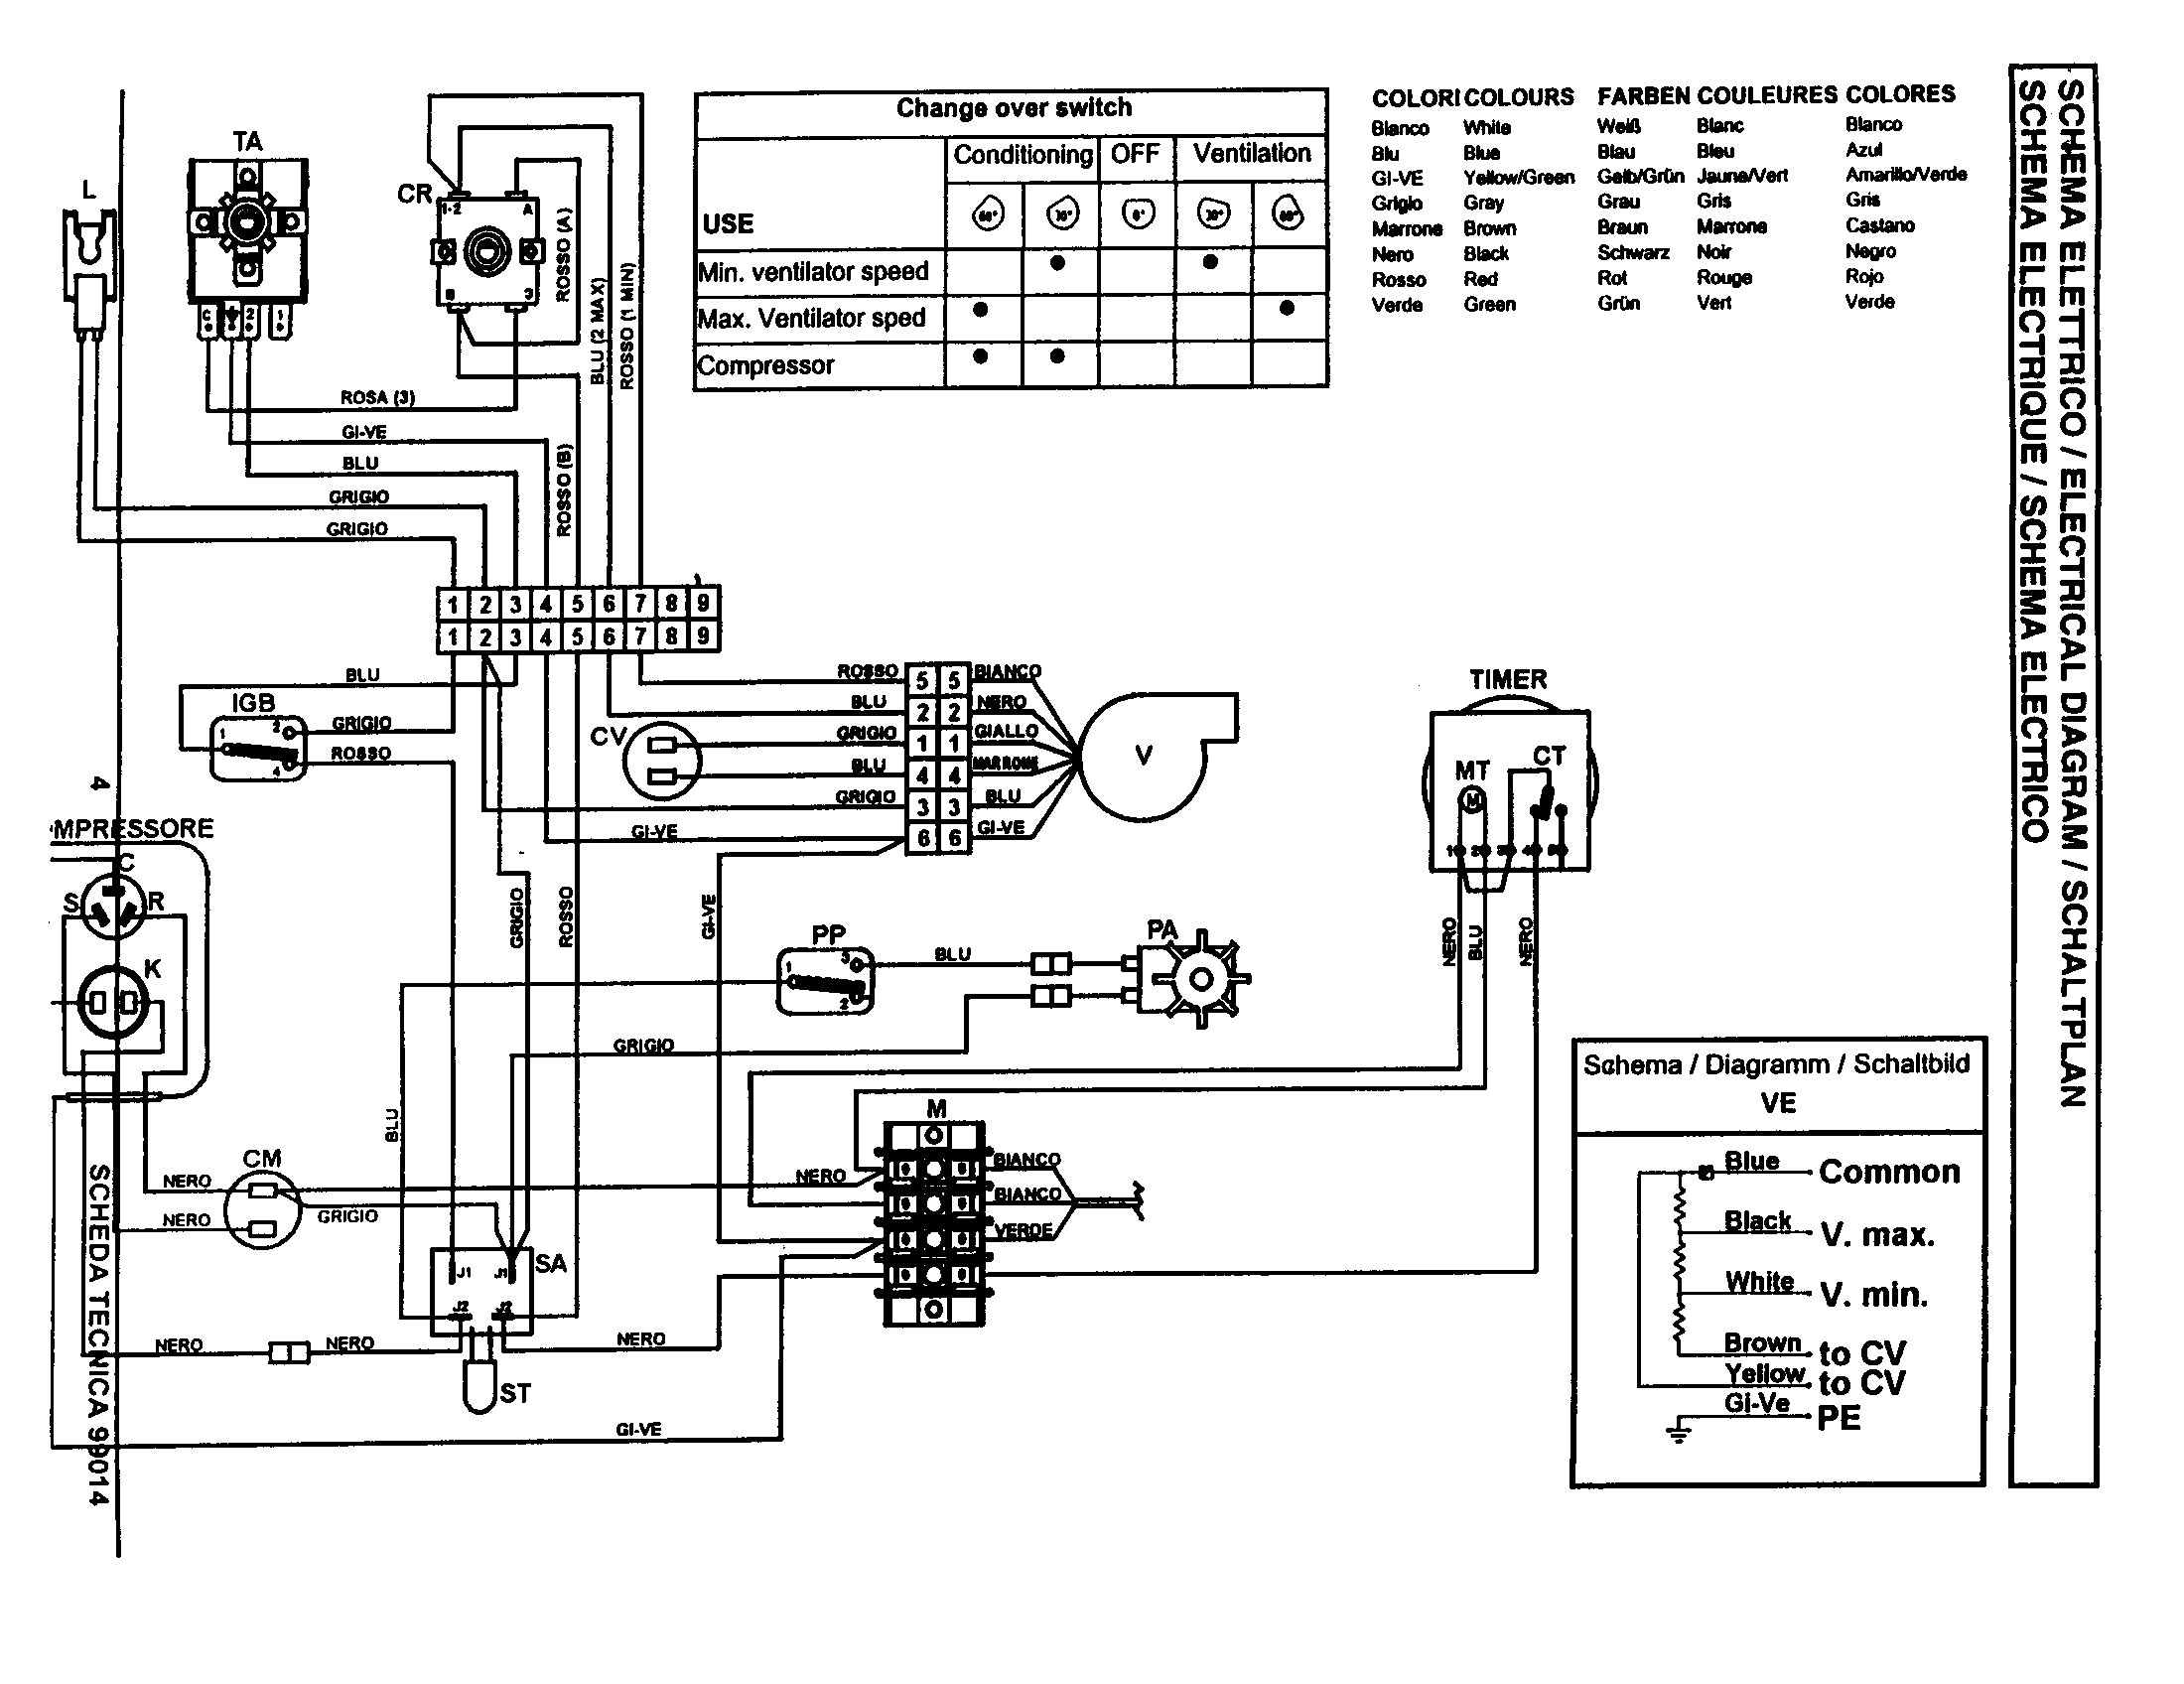 Wiring Diagram Simple Hvac Central Air Conditioner Throughout